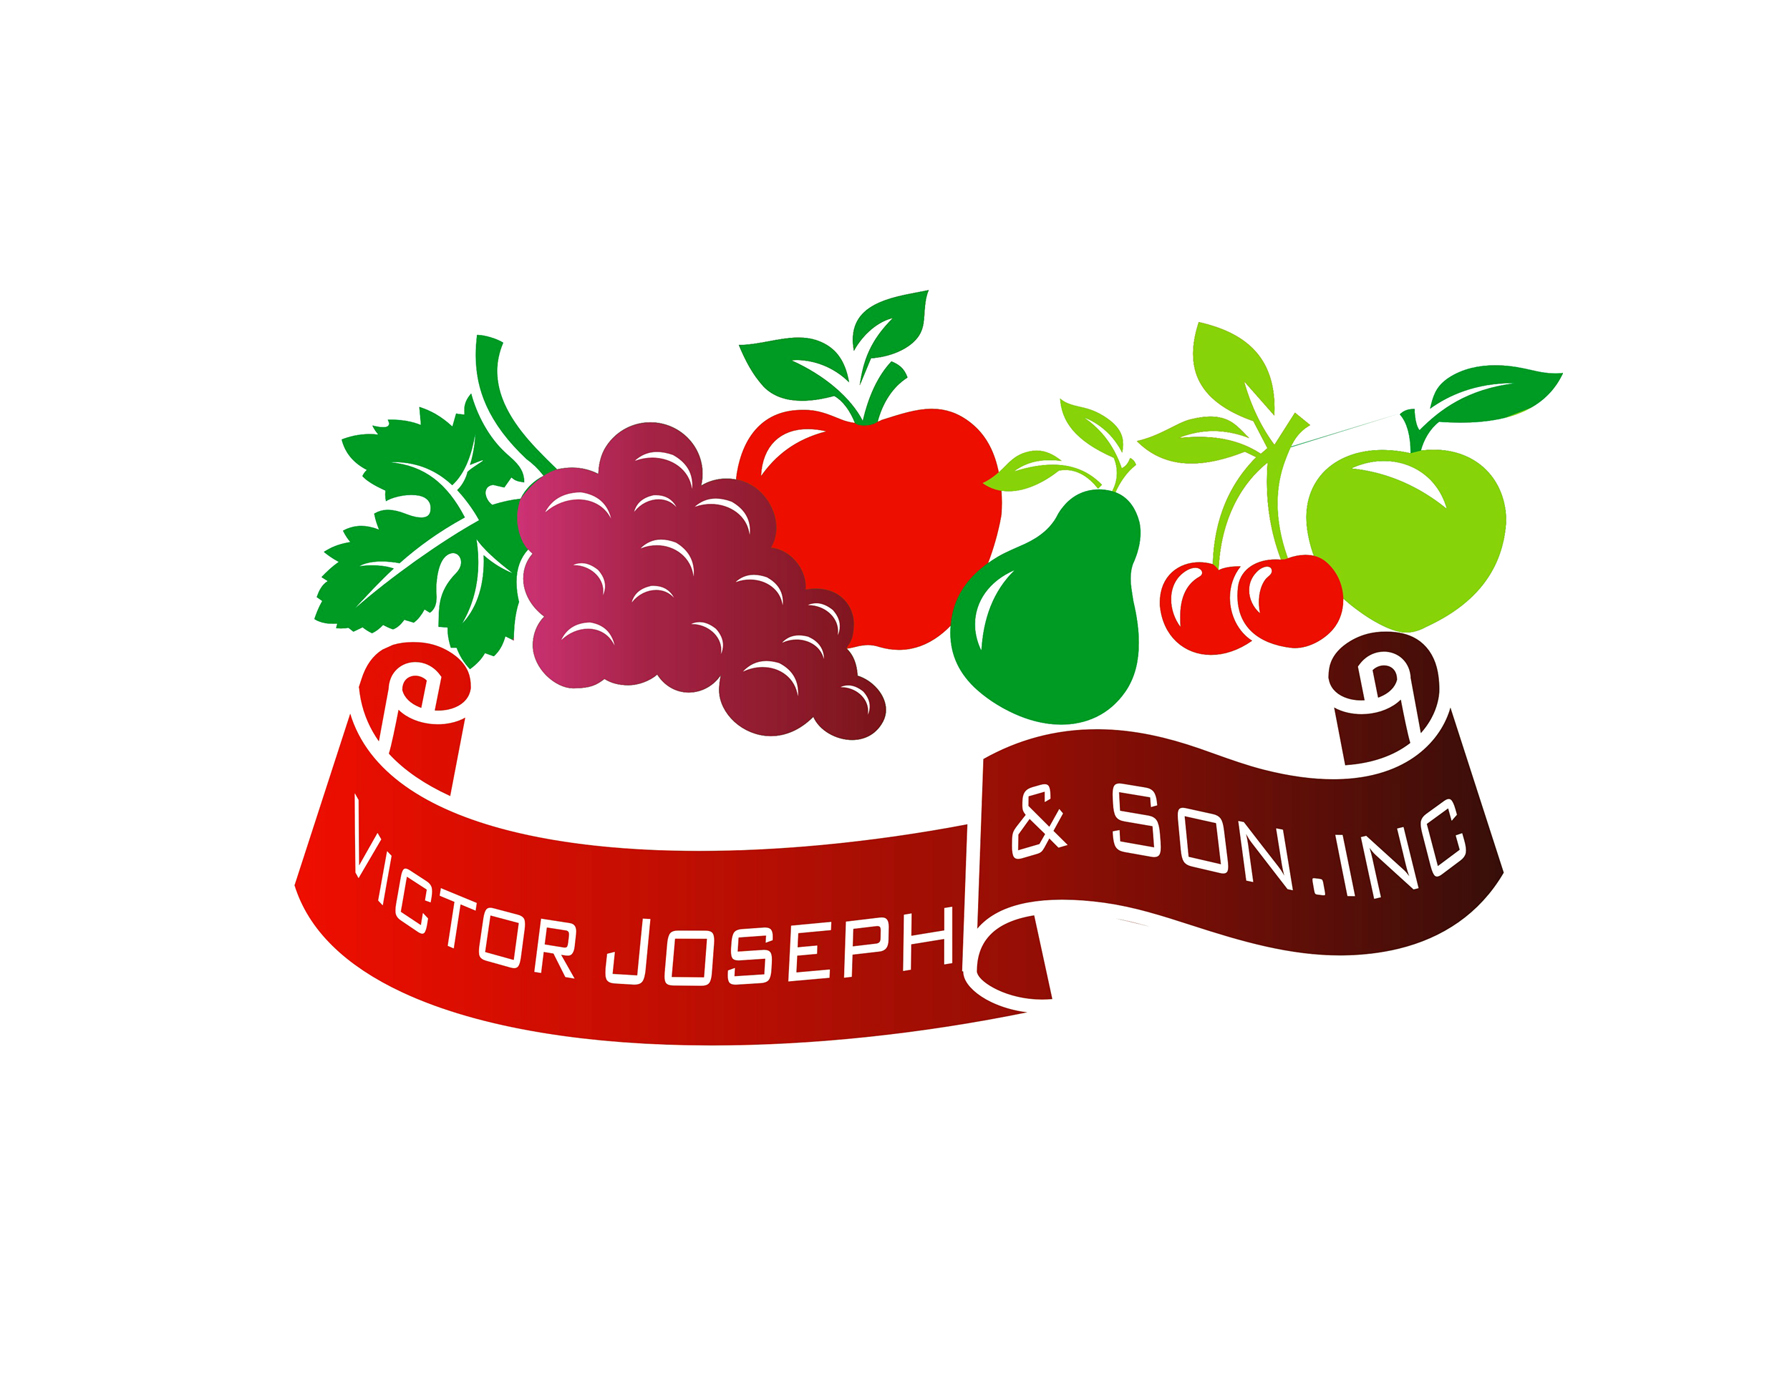 Logo Design by Private User - Entry No. 244 in the Logo Design Contest Imaginative Logo Design for Victor Joseph & Son, Inc..